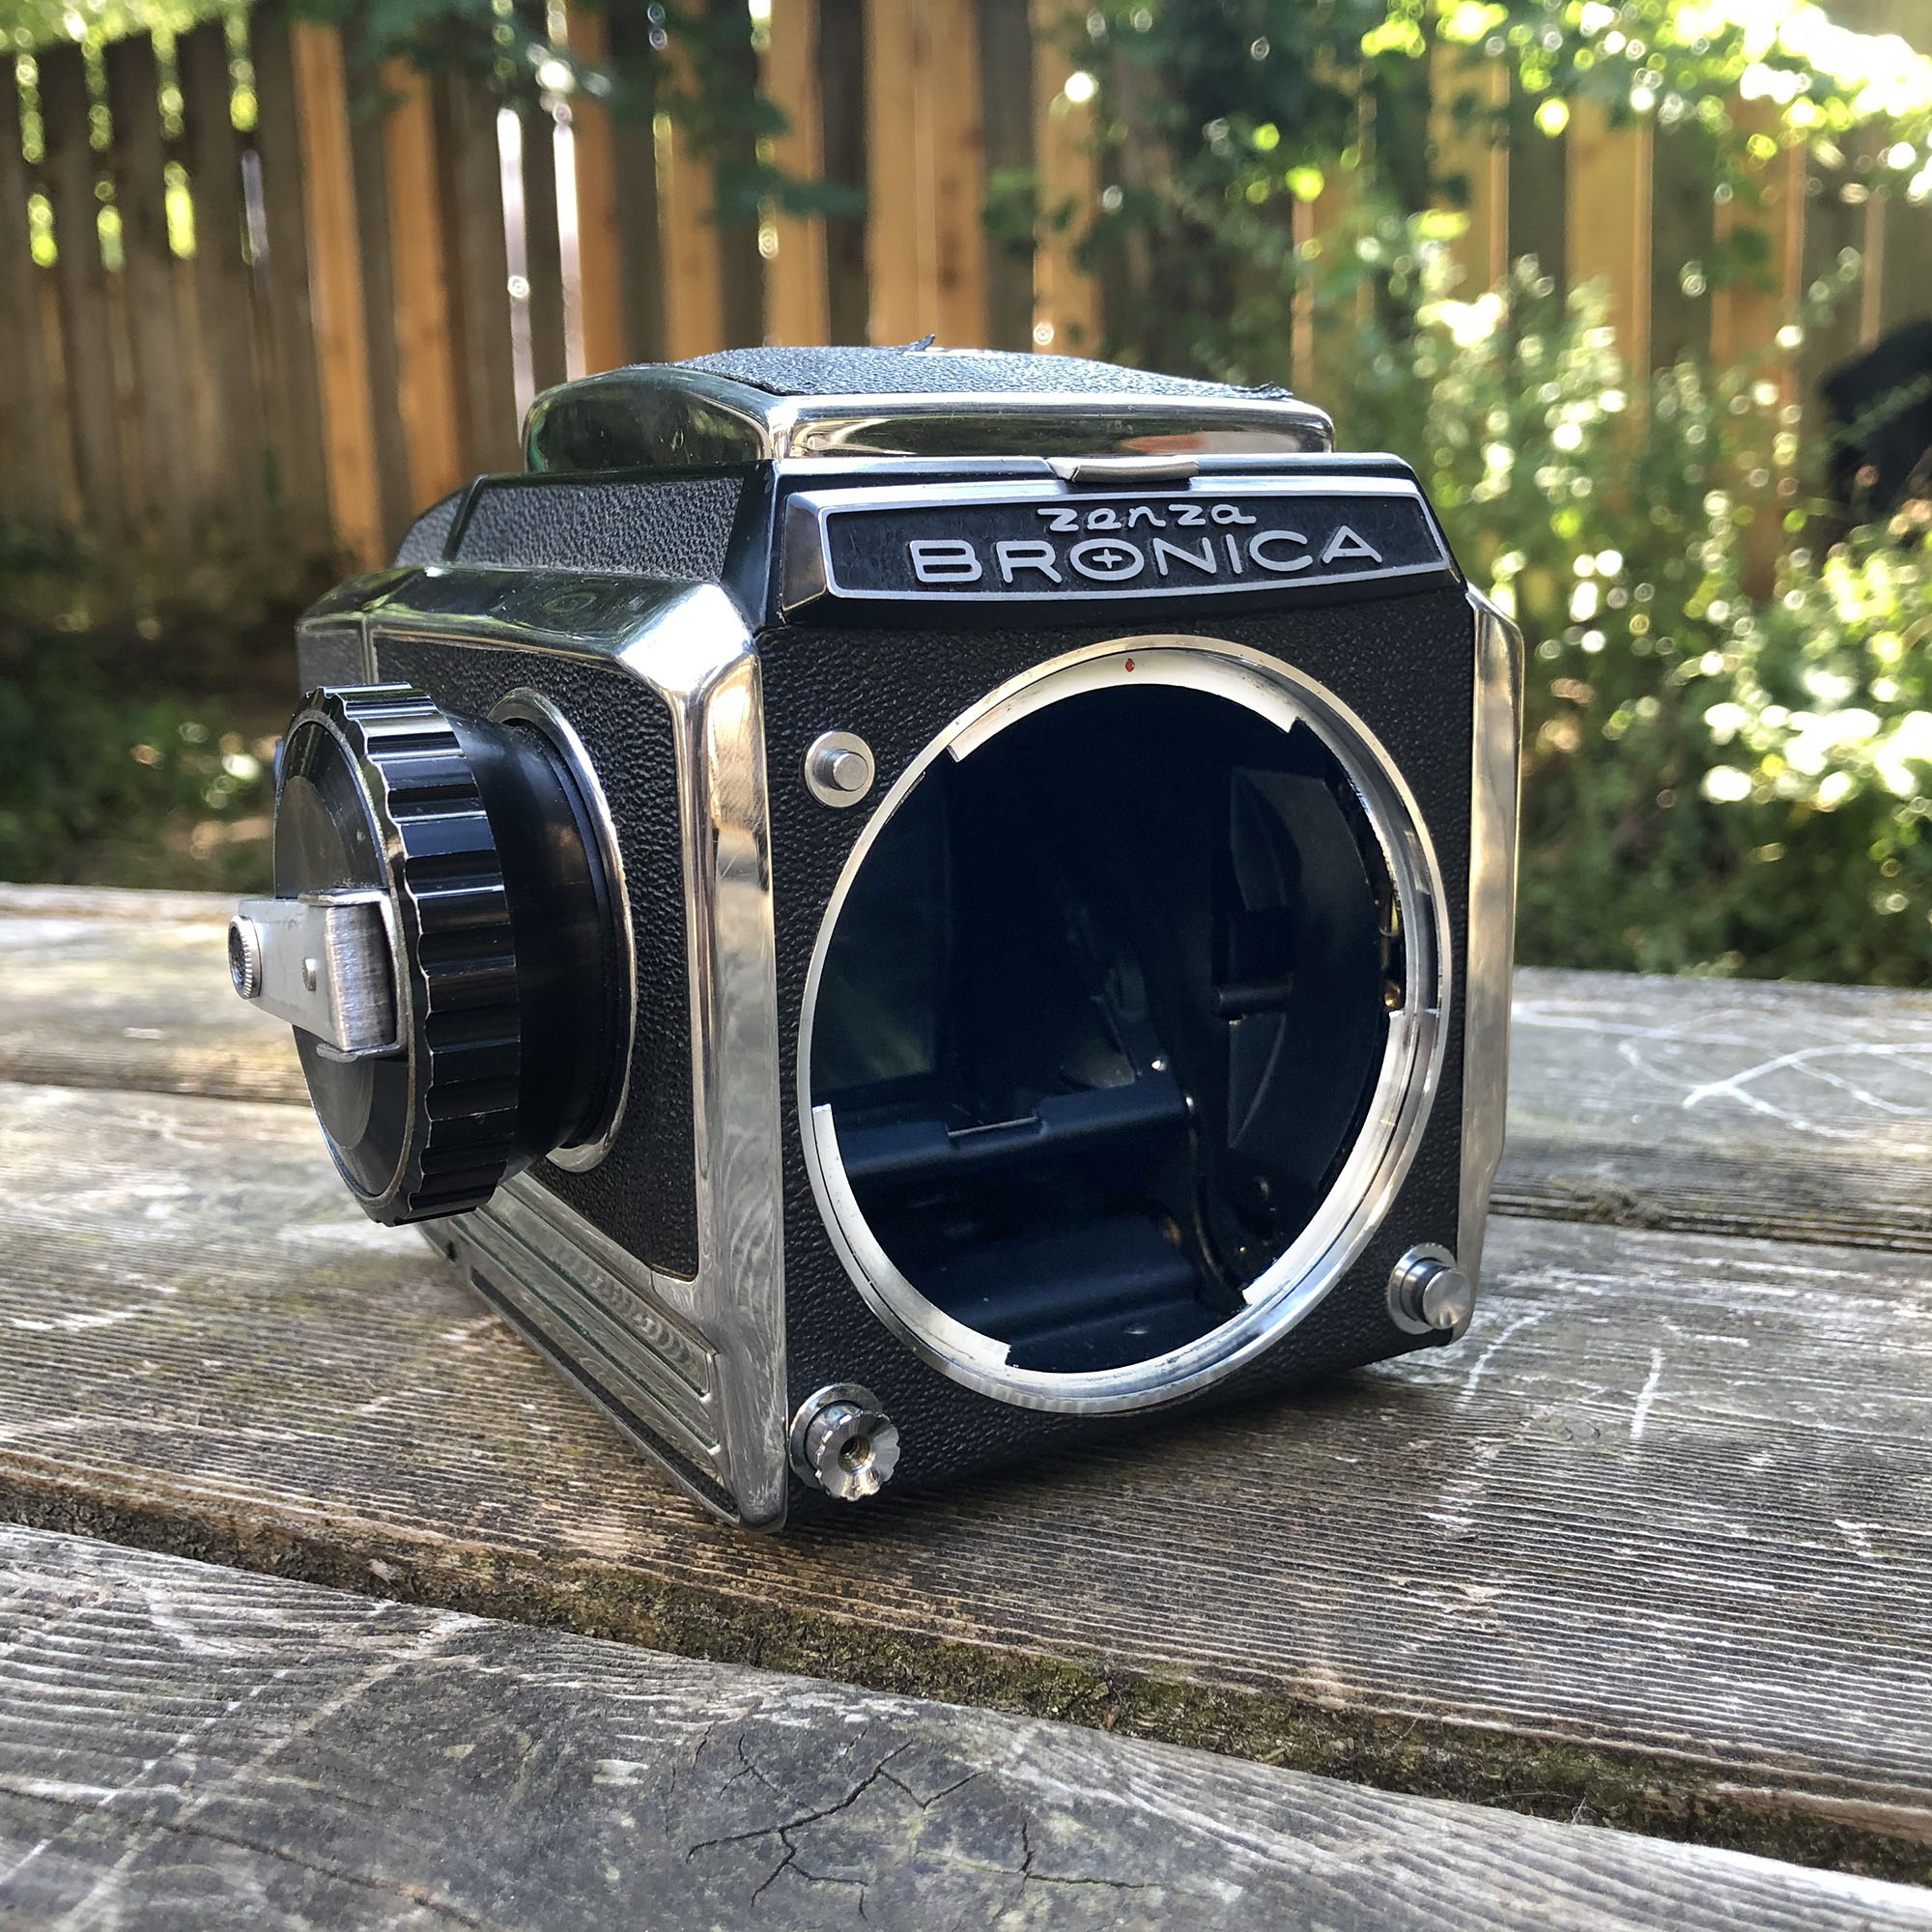 Bronica S2 body with no lens